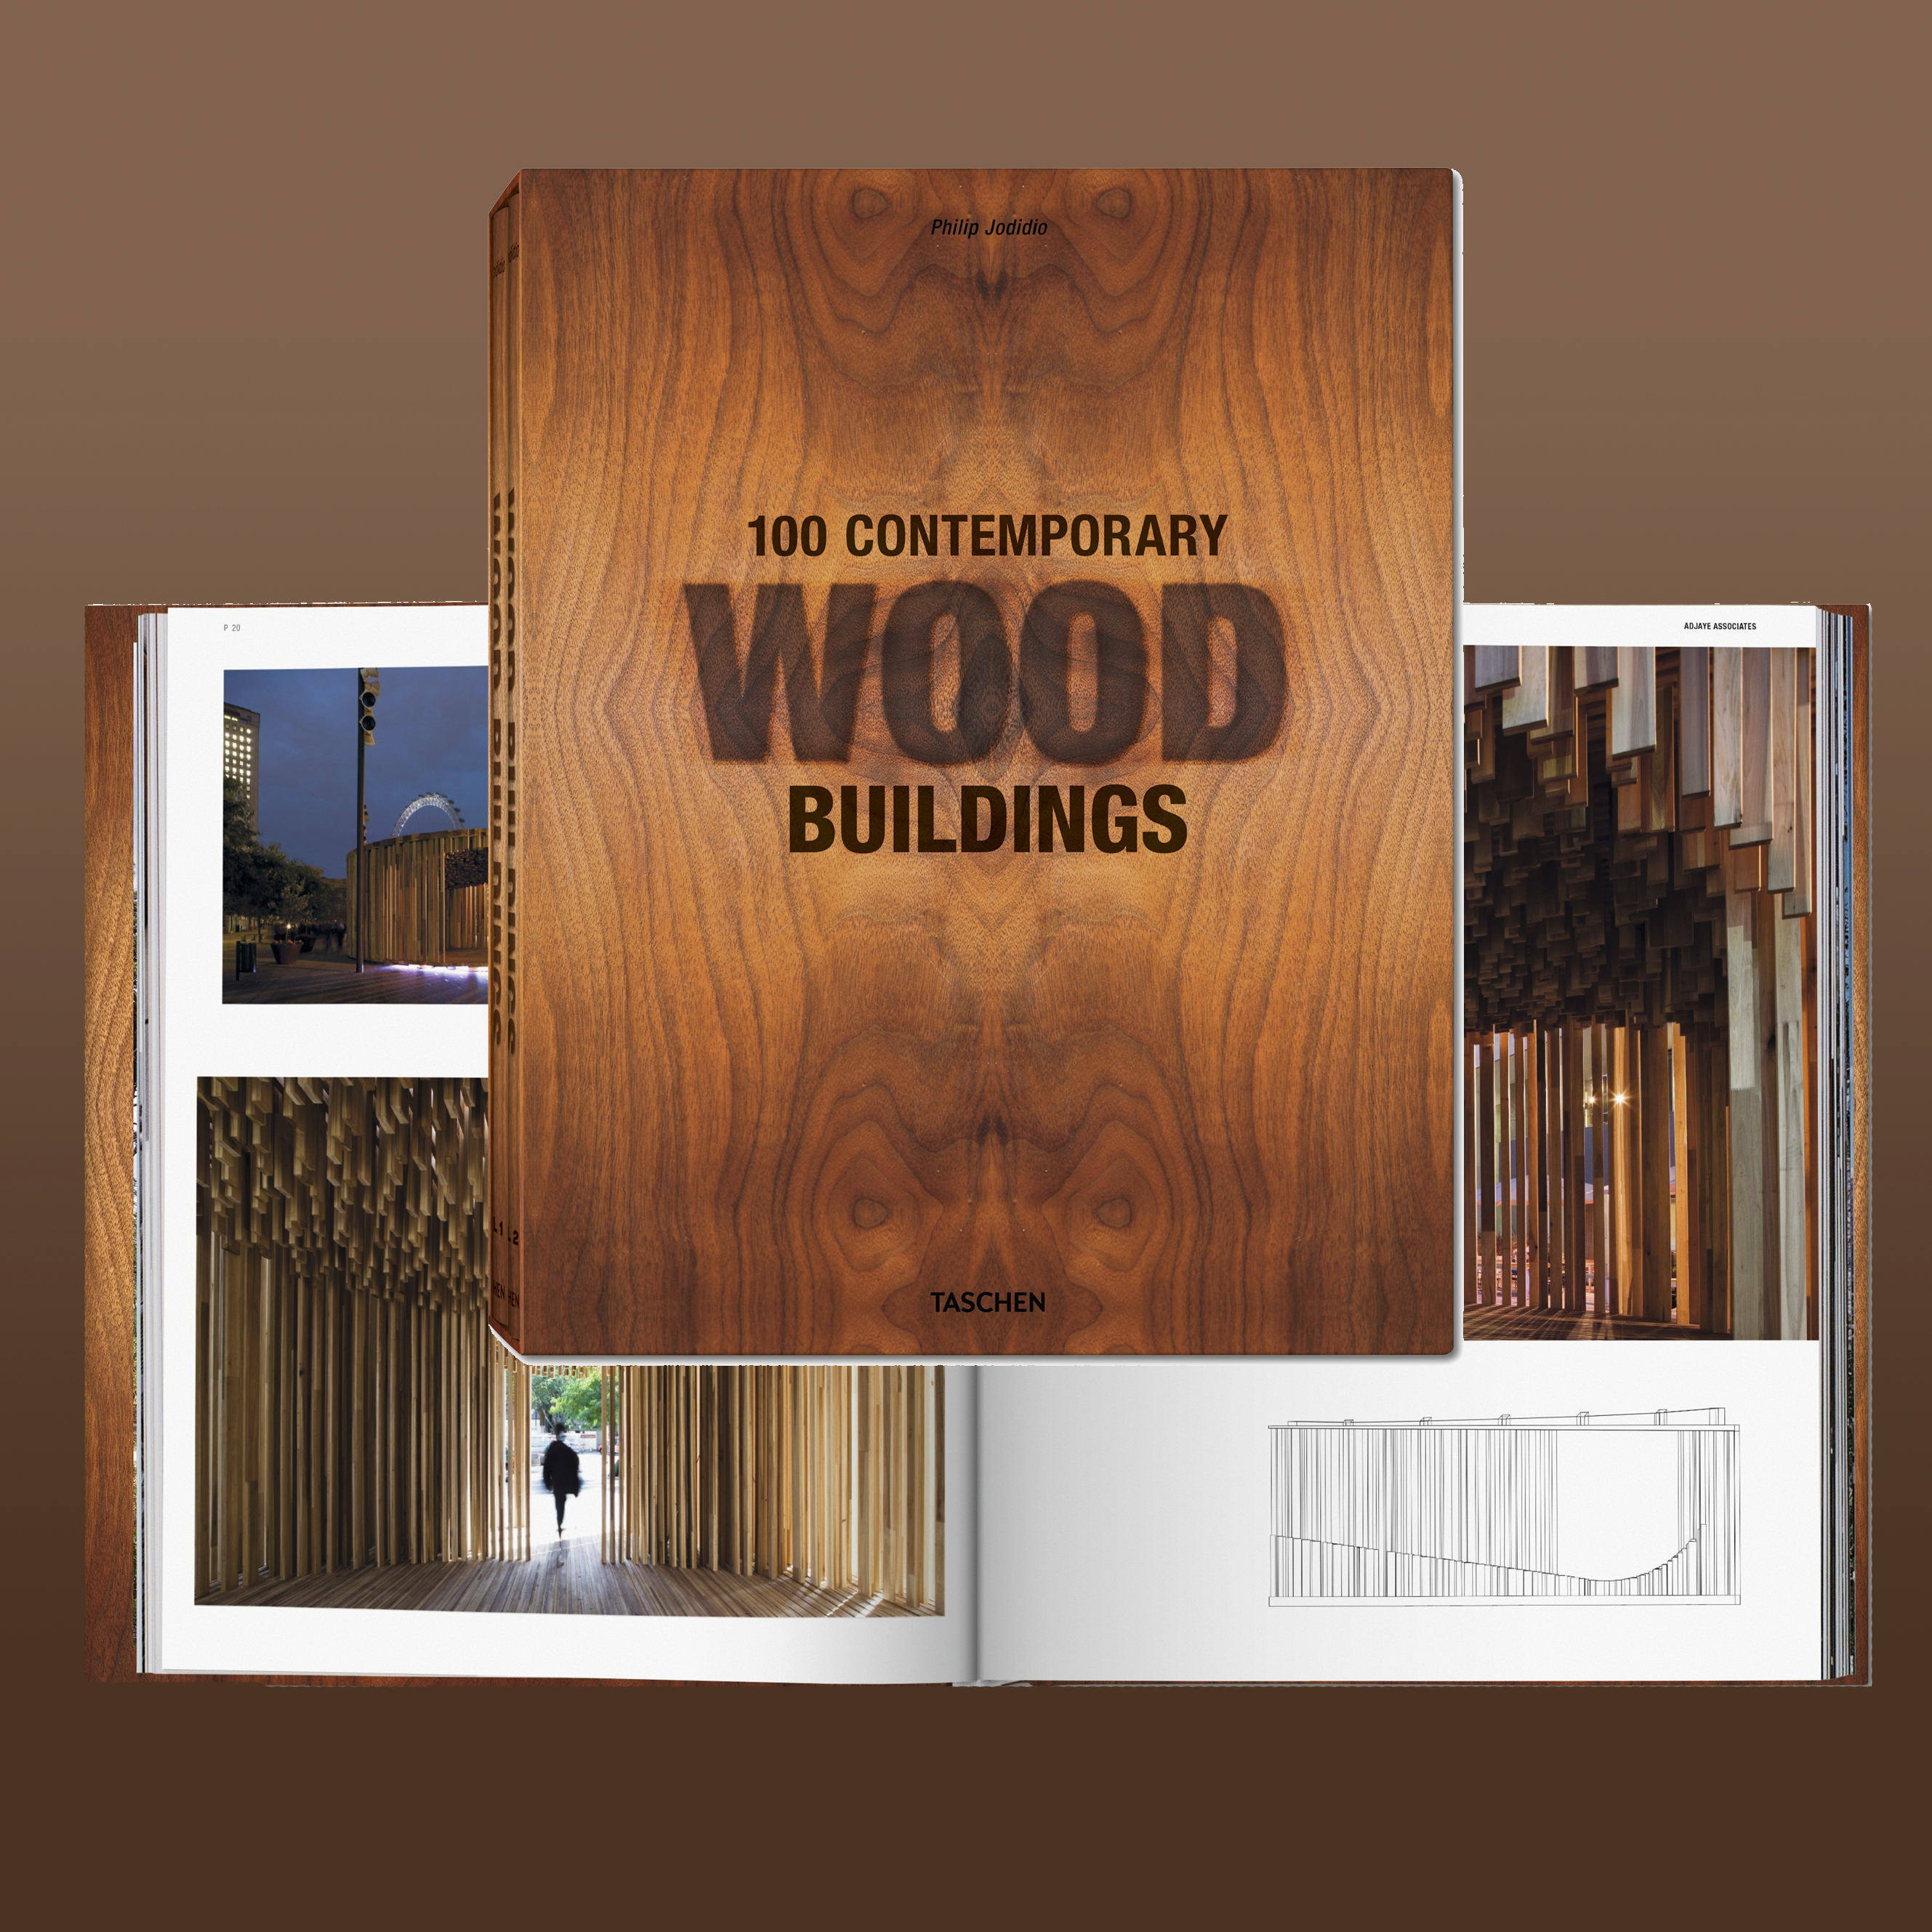 100-contemorary-wood-buildings-forside